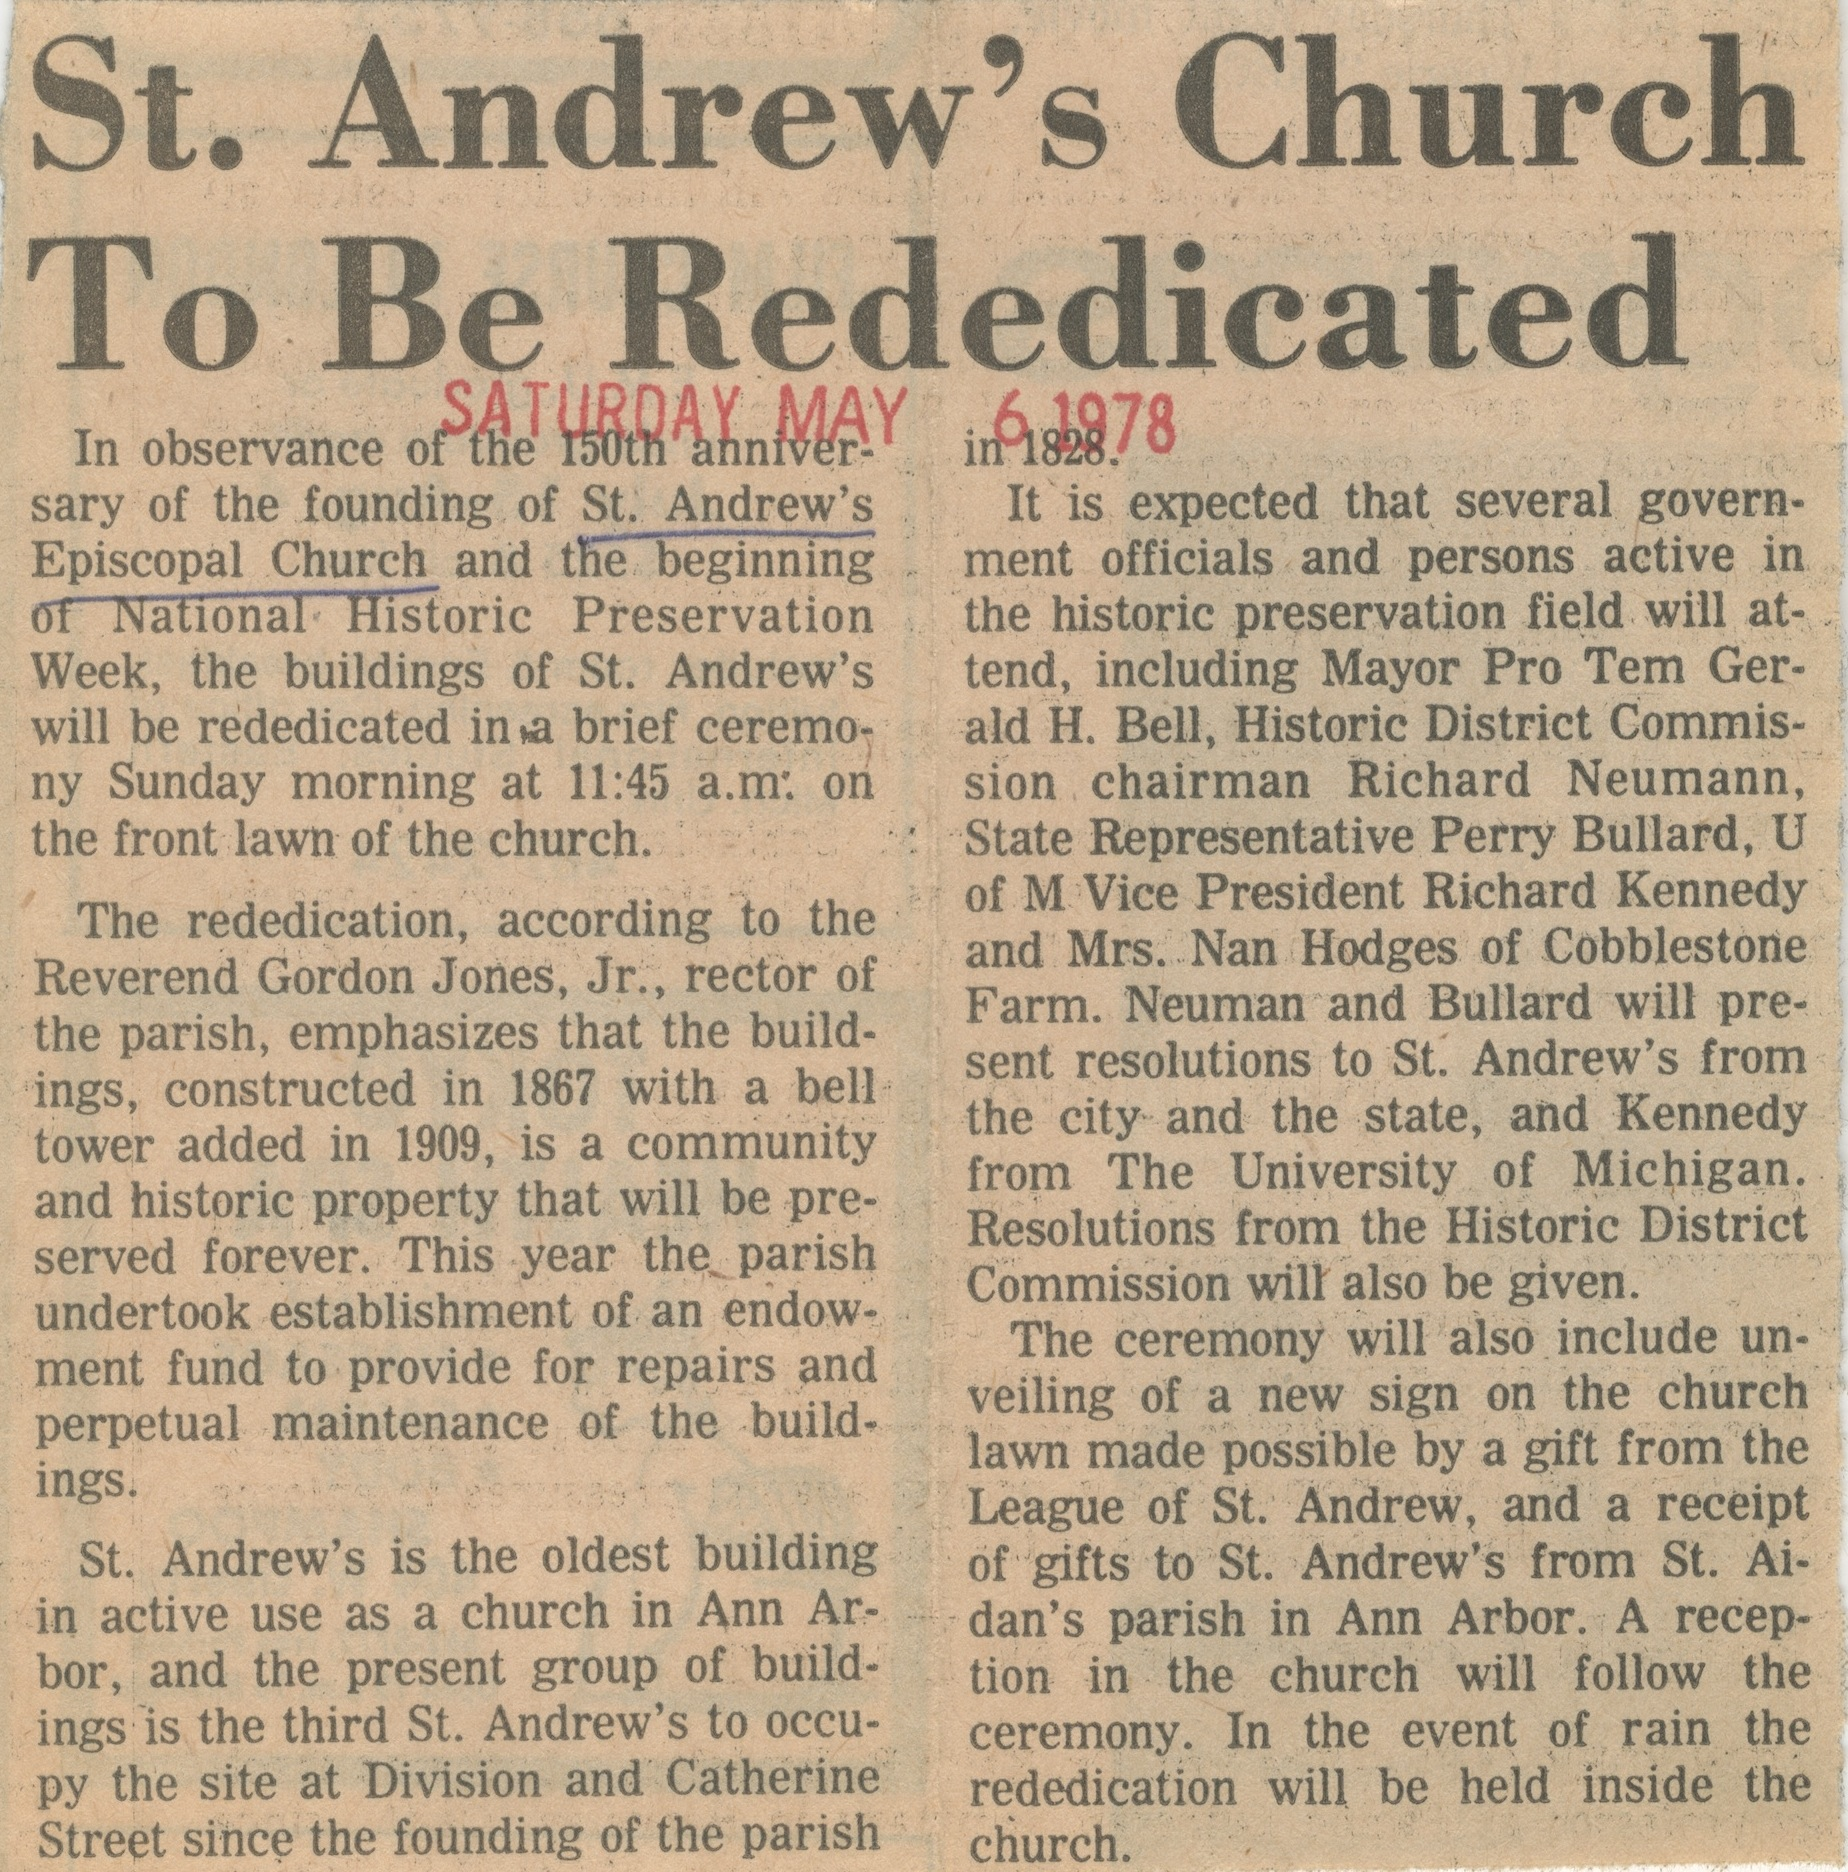 St. Andrew's Church To Be Rededicated image